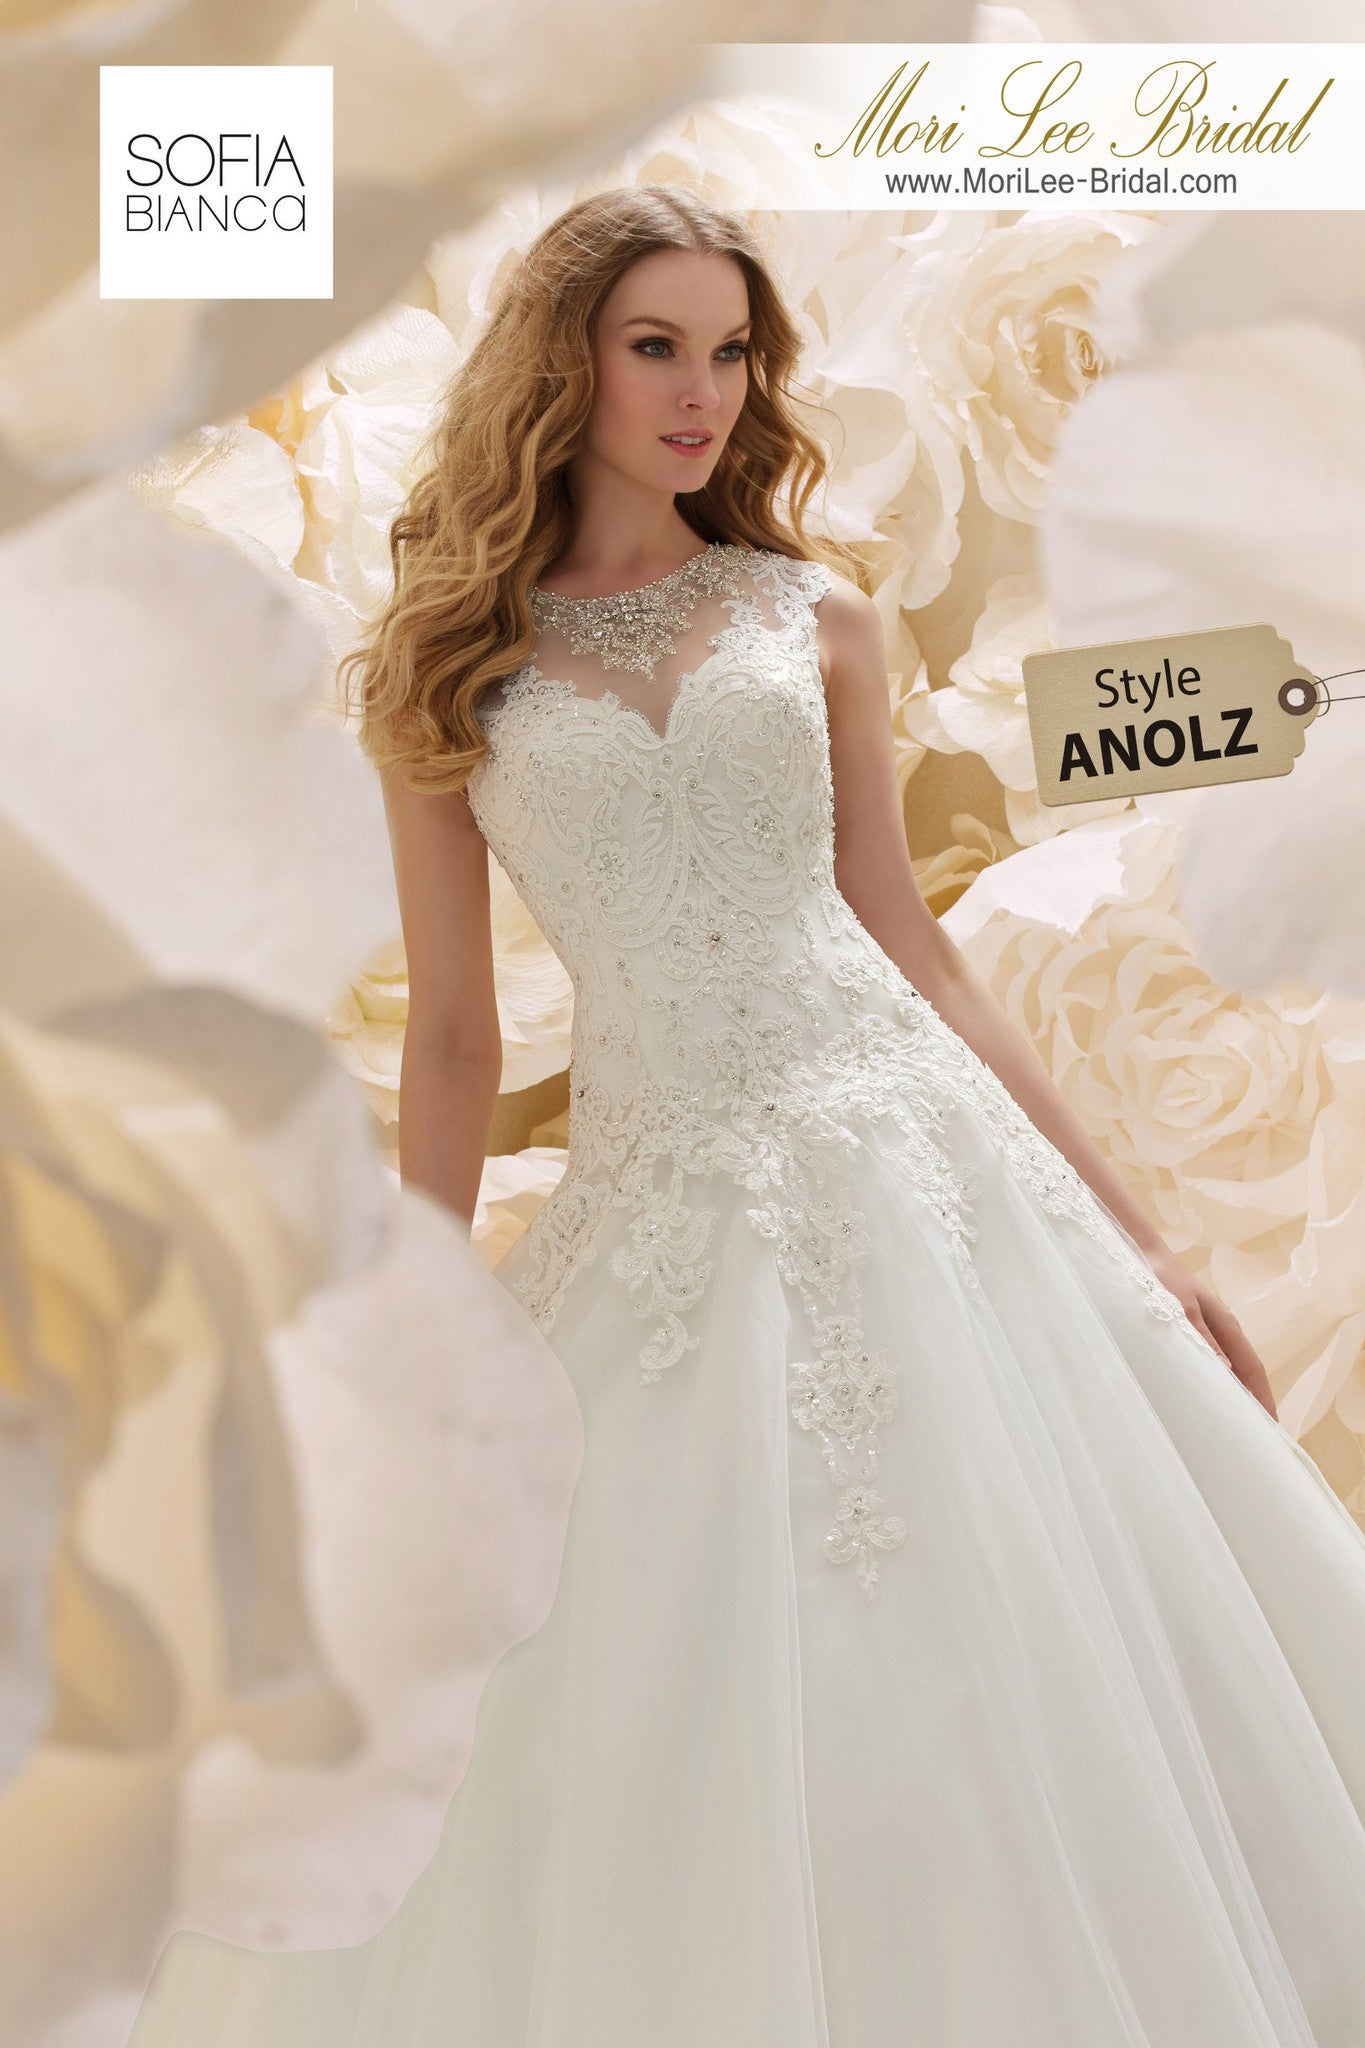 ANOLZ - Mori Lee Bridal